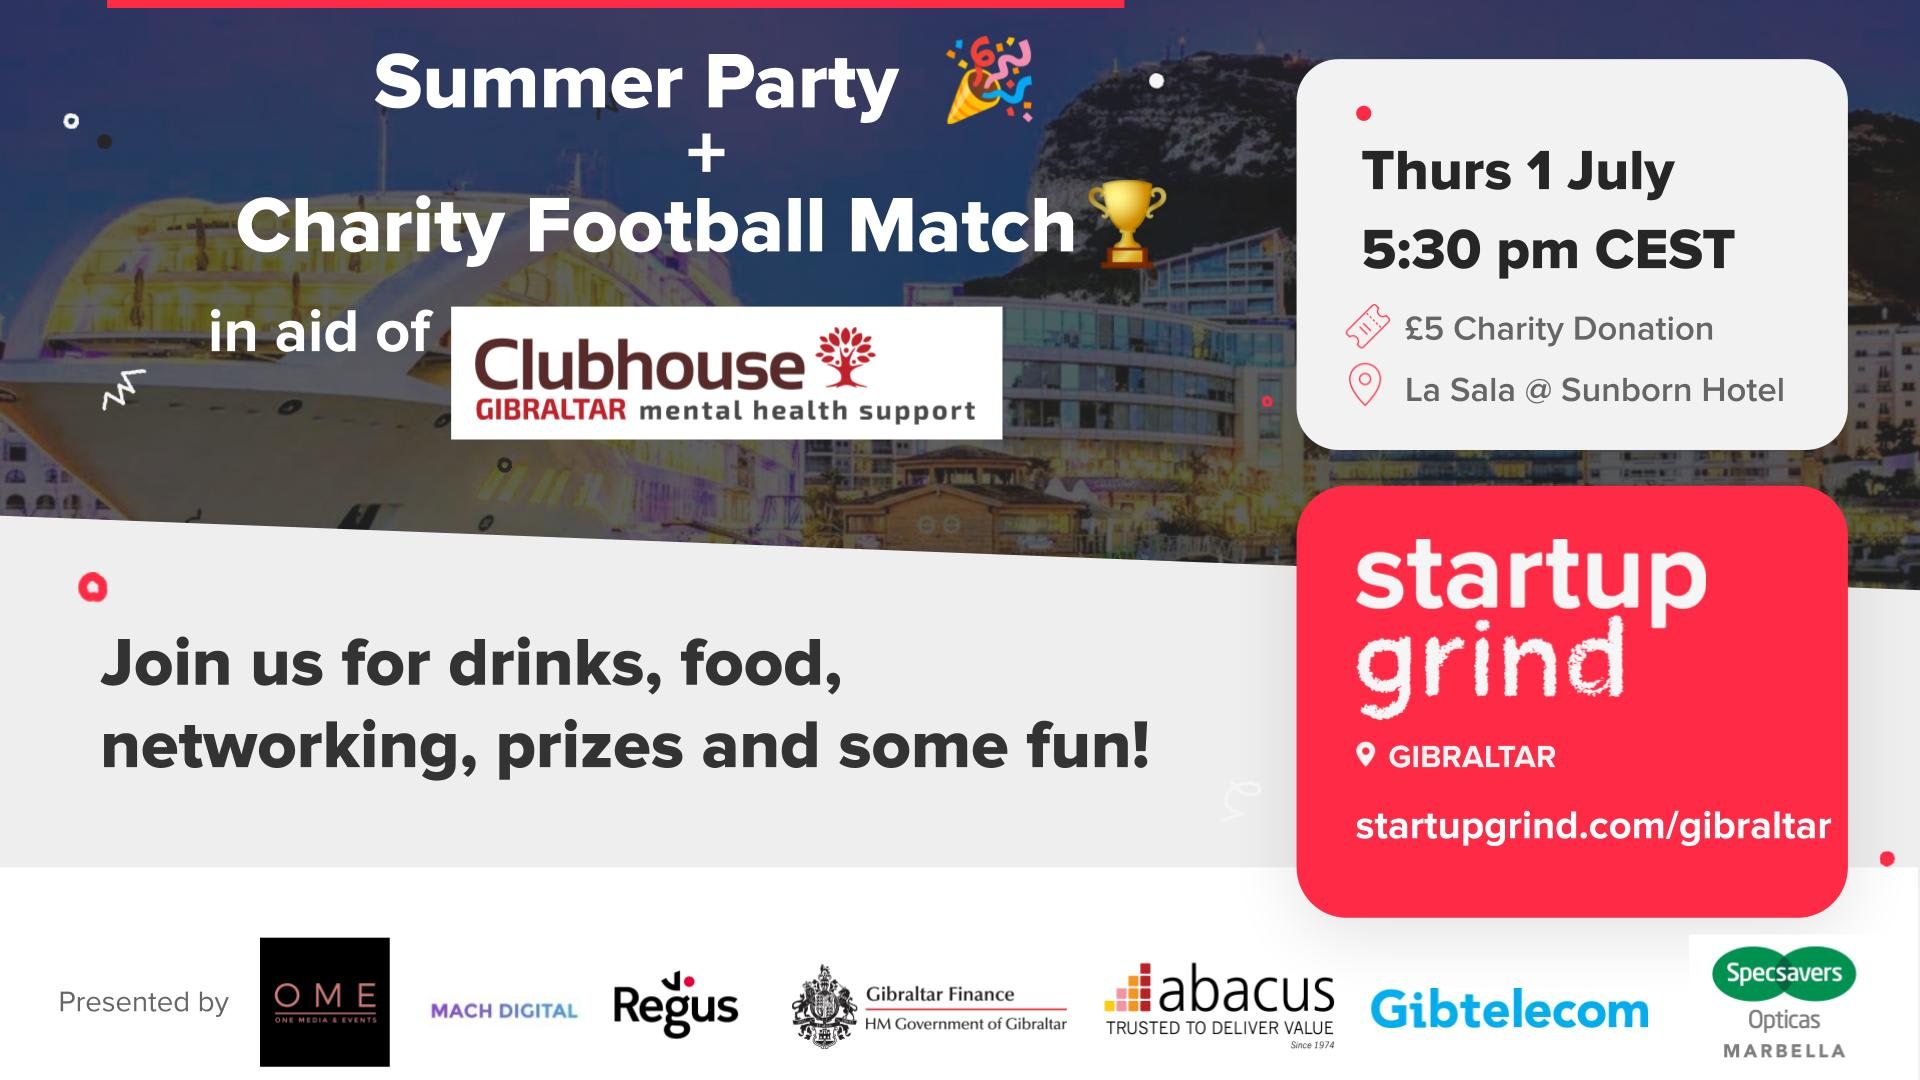 Celebrating the summer and raising funds for Clubhouse Gibraltar